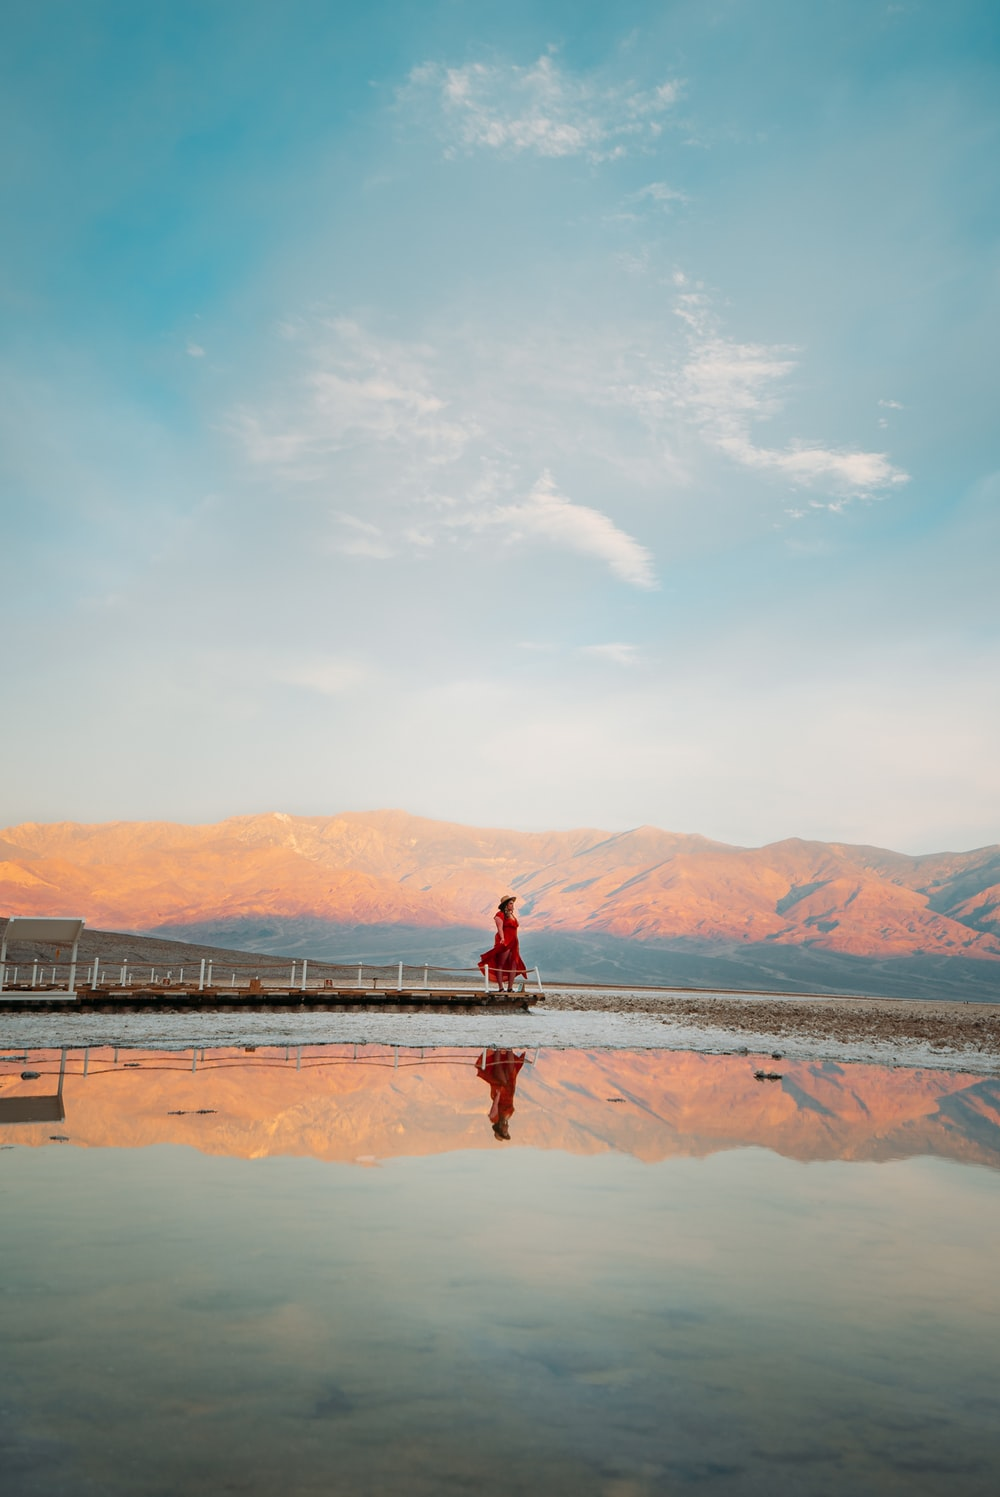 person in red jacket standing on brown sand near body of water during daytime